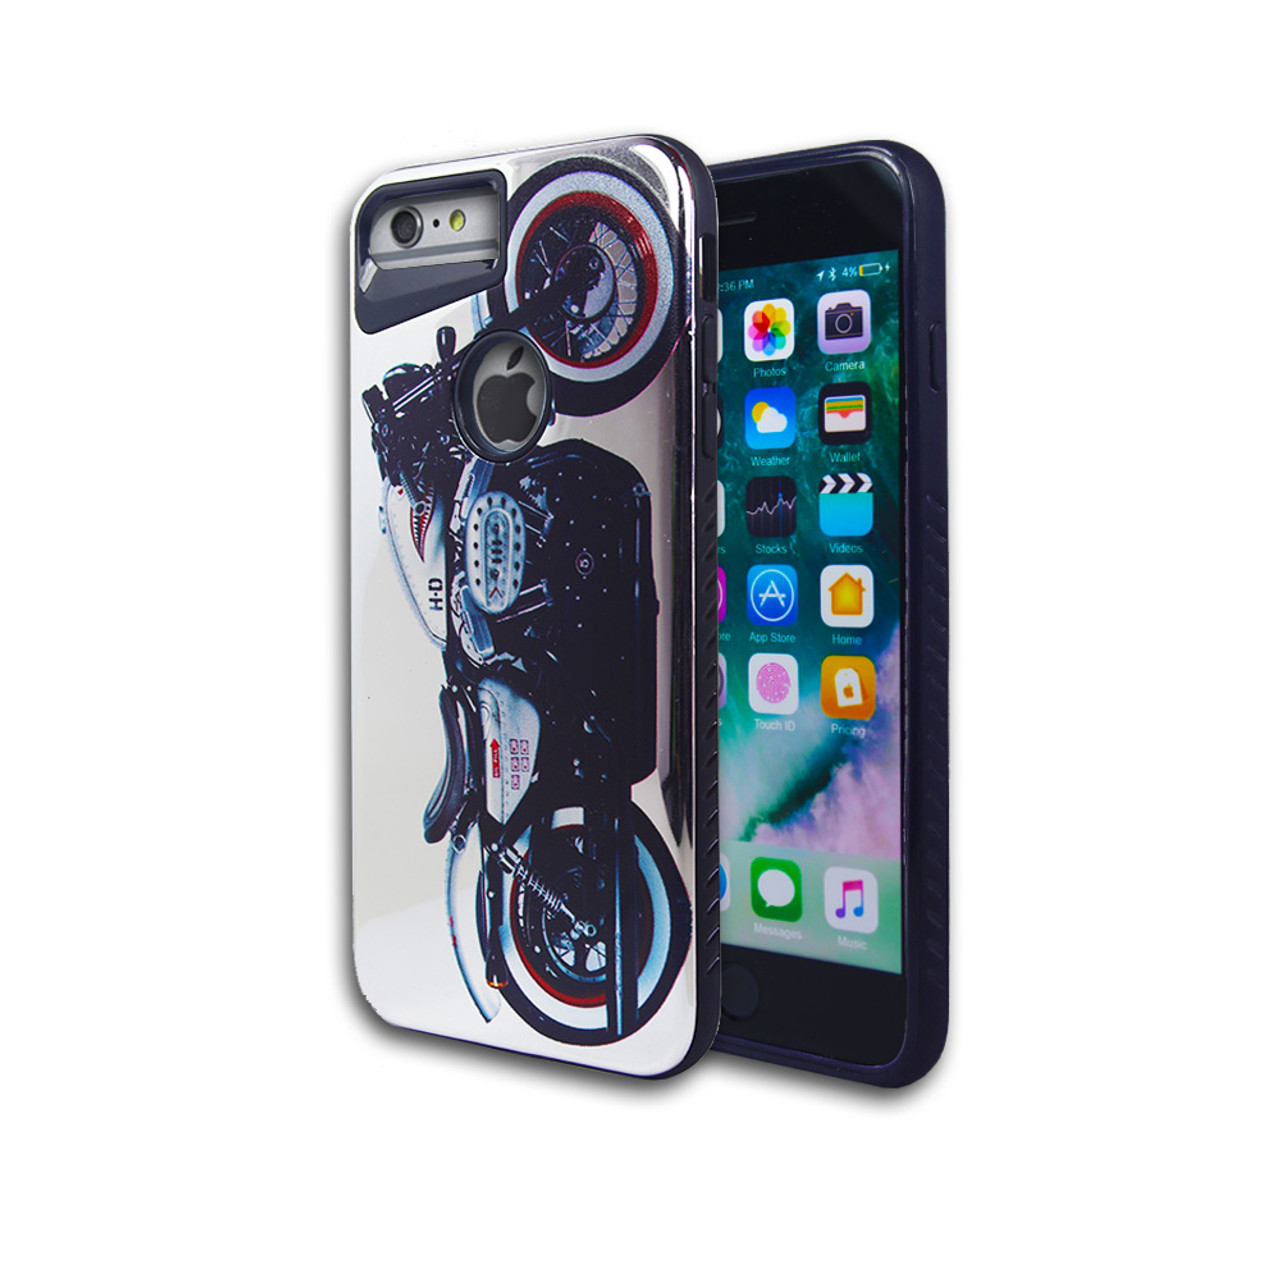 sports shoes 18e3a b9557 Design Chrome Hybrid Case for iPhone 7/8 Plus Harley Motorcycle Design